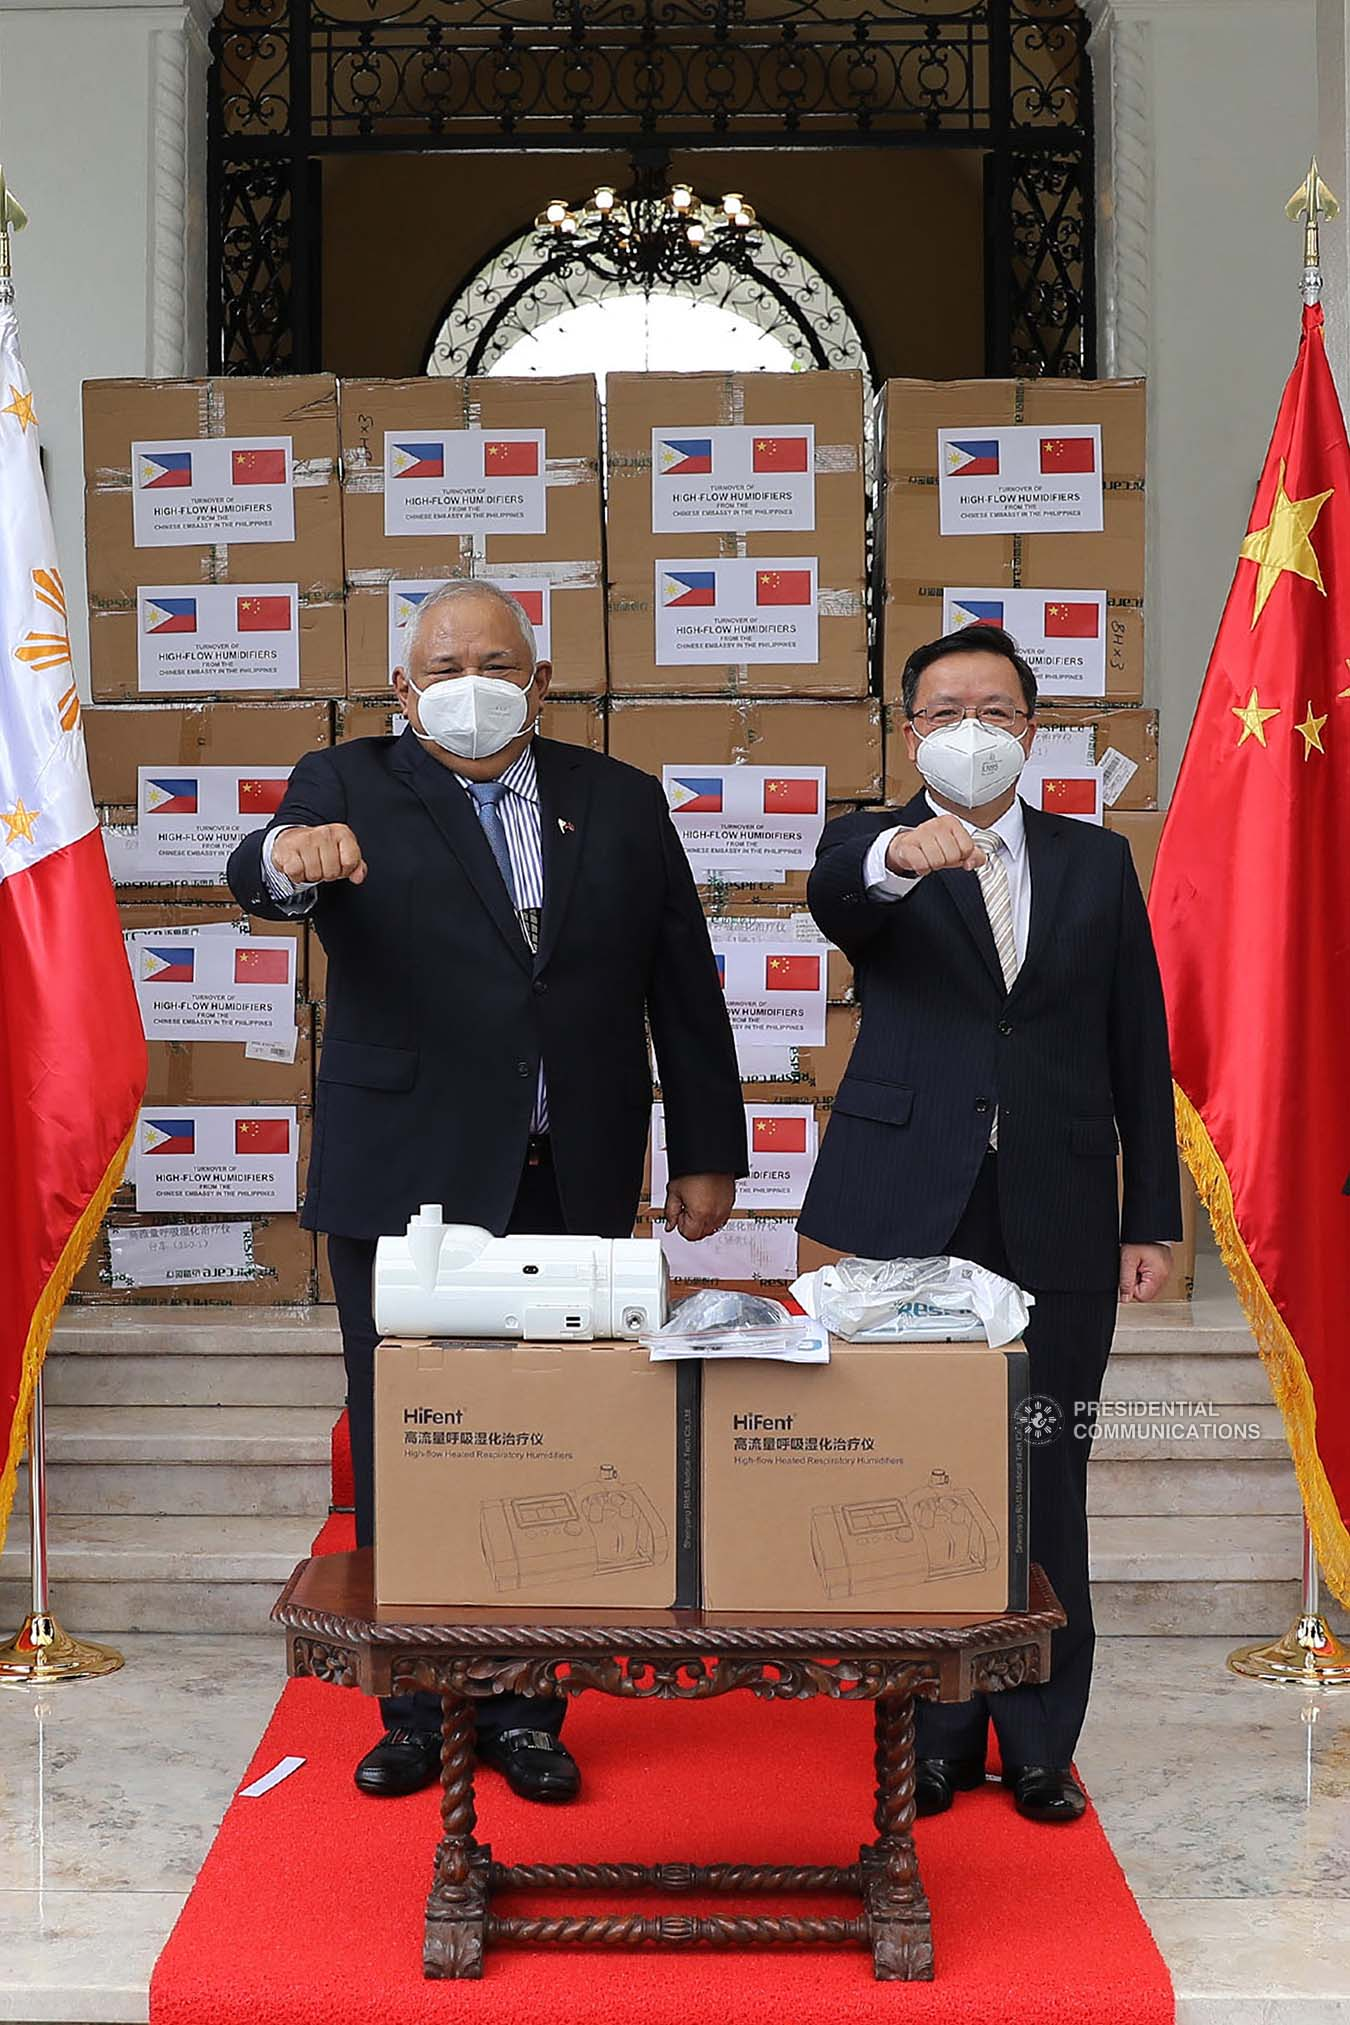 Executive Secretary Salvador Medialdea and Chinese Ambassador to the Philippines Huang Xilian pose for prosperity following the ceremonial turnover of 150 units of High-Flow Nasal Cannula Oxygen Therapy equipment with 300 sets of accessories  at the Kalayaan in Malacañan Palace on October 21, 2020. Joining them are Presidential Assistant on Foreign Affairs and Chief of Presidential Protocol Robert E.A. Borje and representatives from the Department on Foreign Affairs, and the Department of Health. The humidifiers donated by Chinese Embassy in the Philippines will help ramp up the capacities of Philippine public hospitals and facilities in providing treatment to COVID-19 patients. The assistance forms part of the Philippines-China partnership in addressing the global challenges brought by the COVID-19 pandemic. ALFRED FRIAS/ PRESIDENTIAL PHOTO